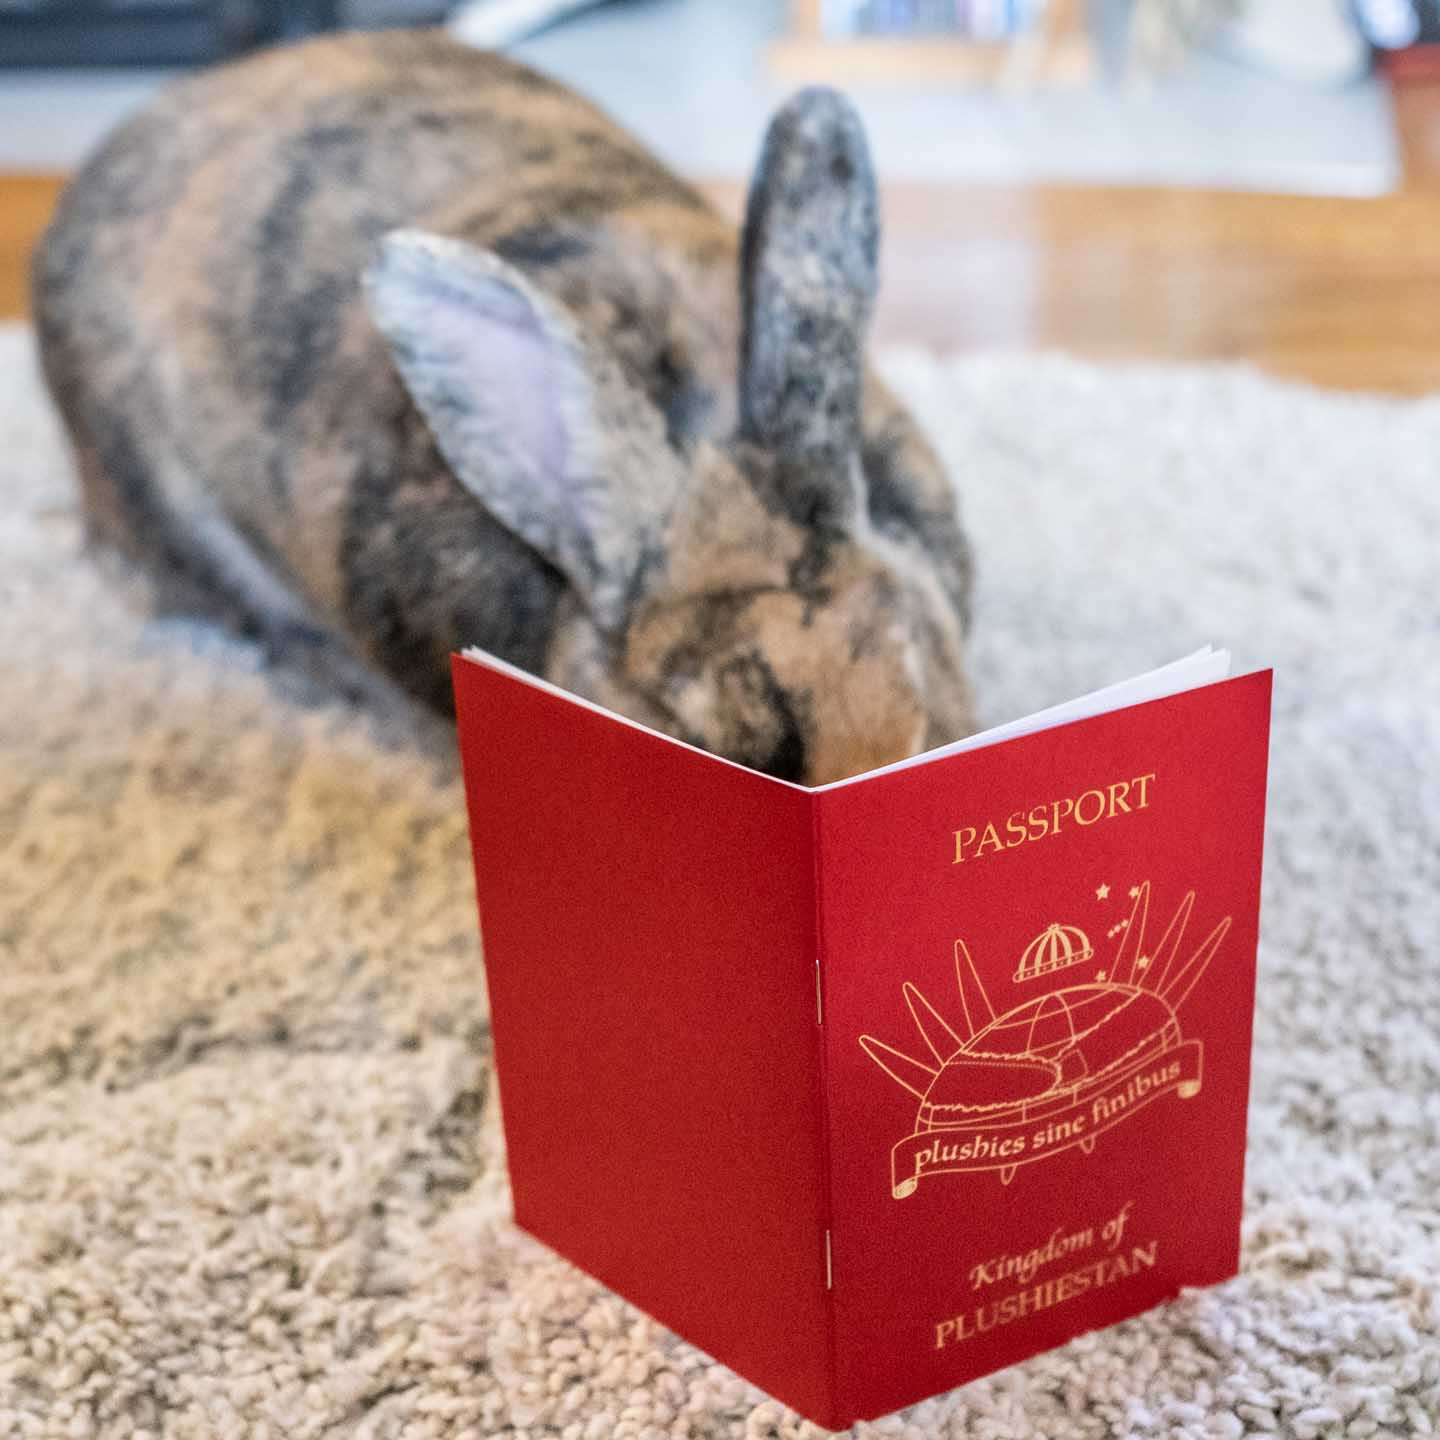 Rabbit sniffing a Plushiestan passport